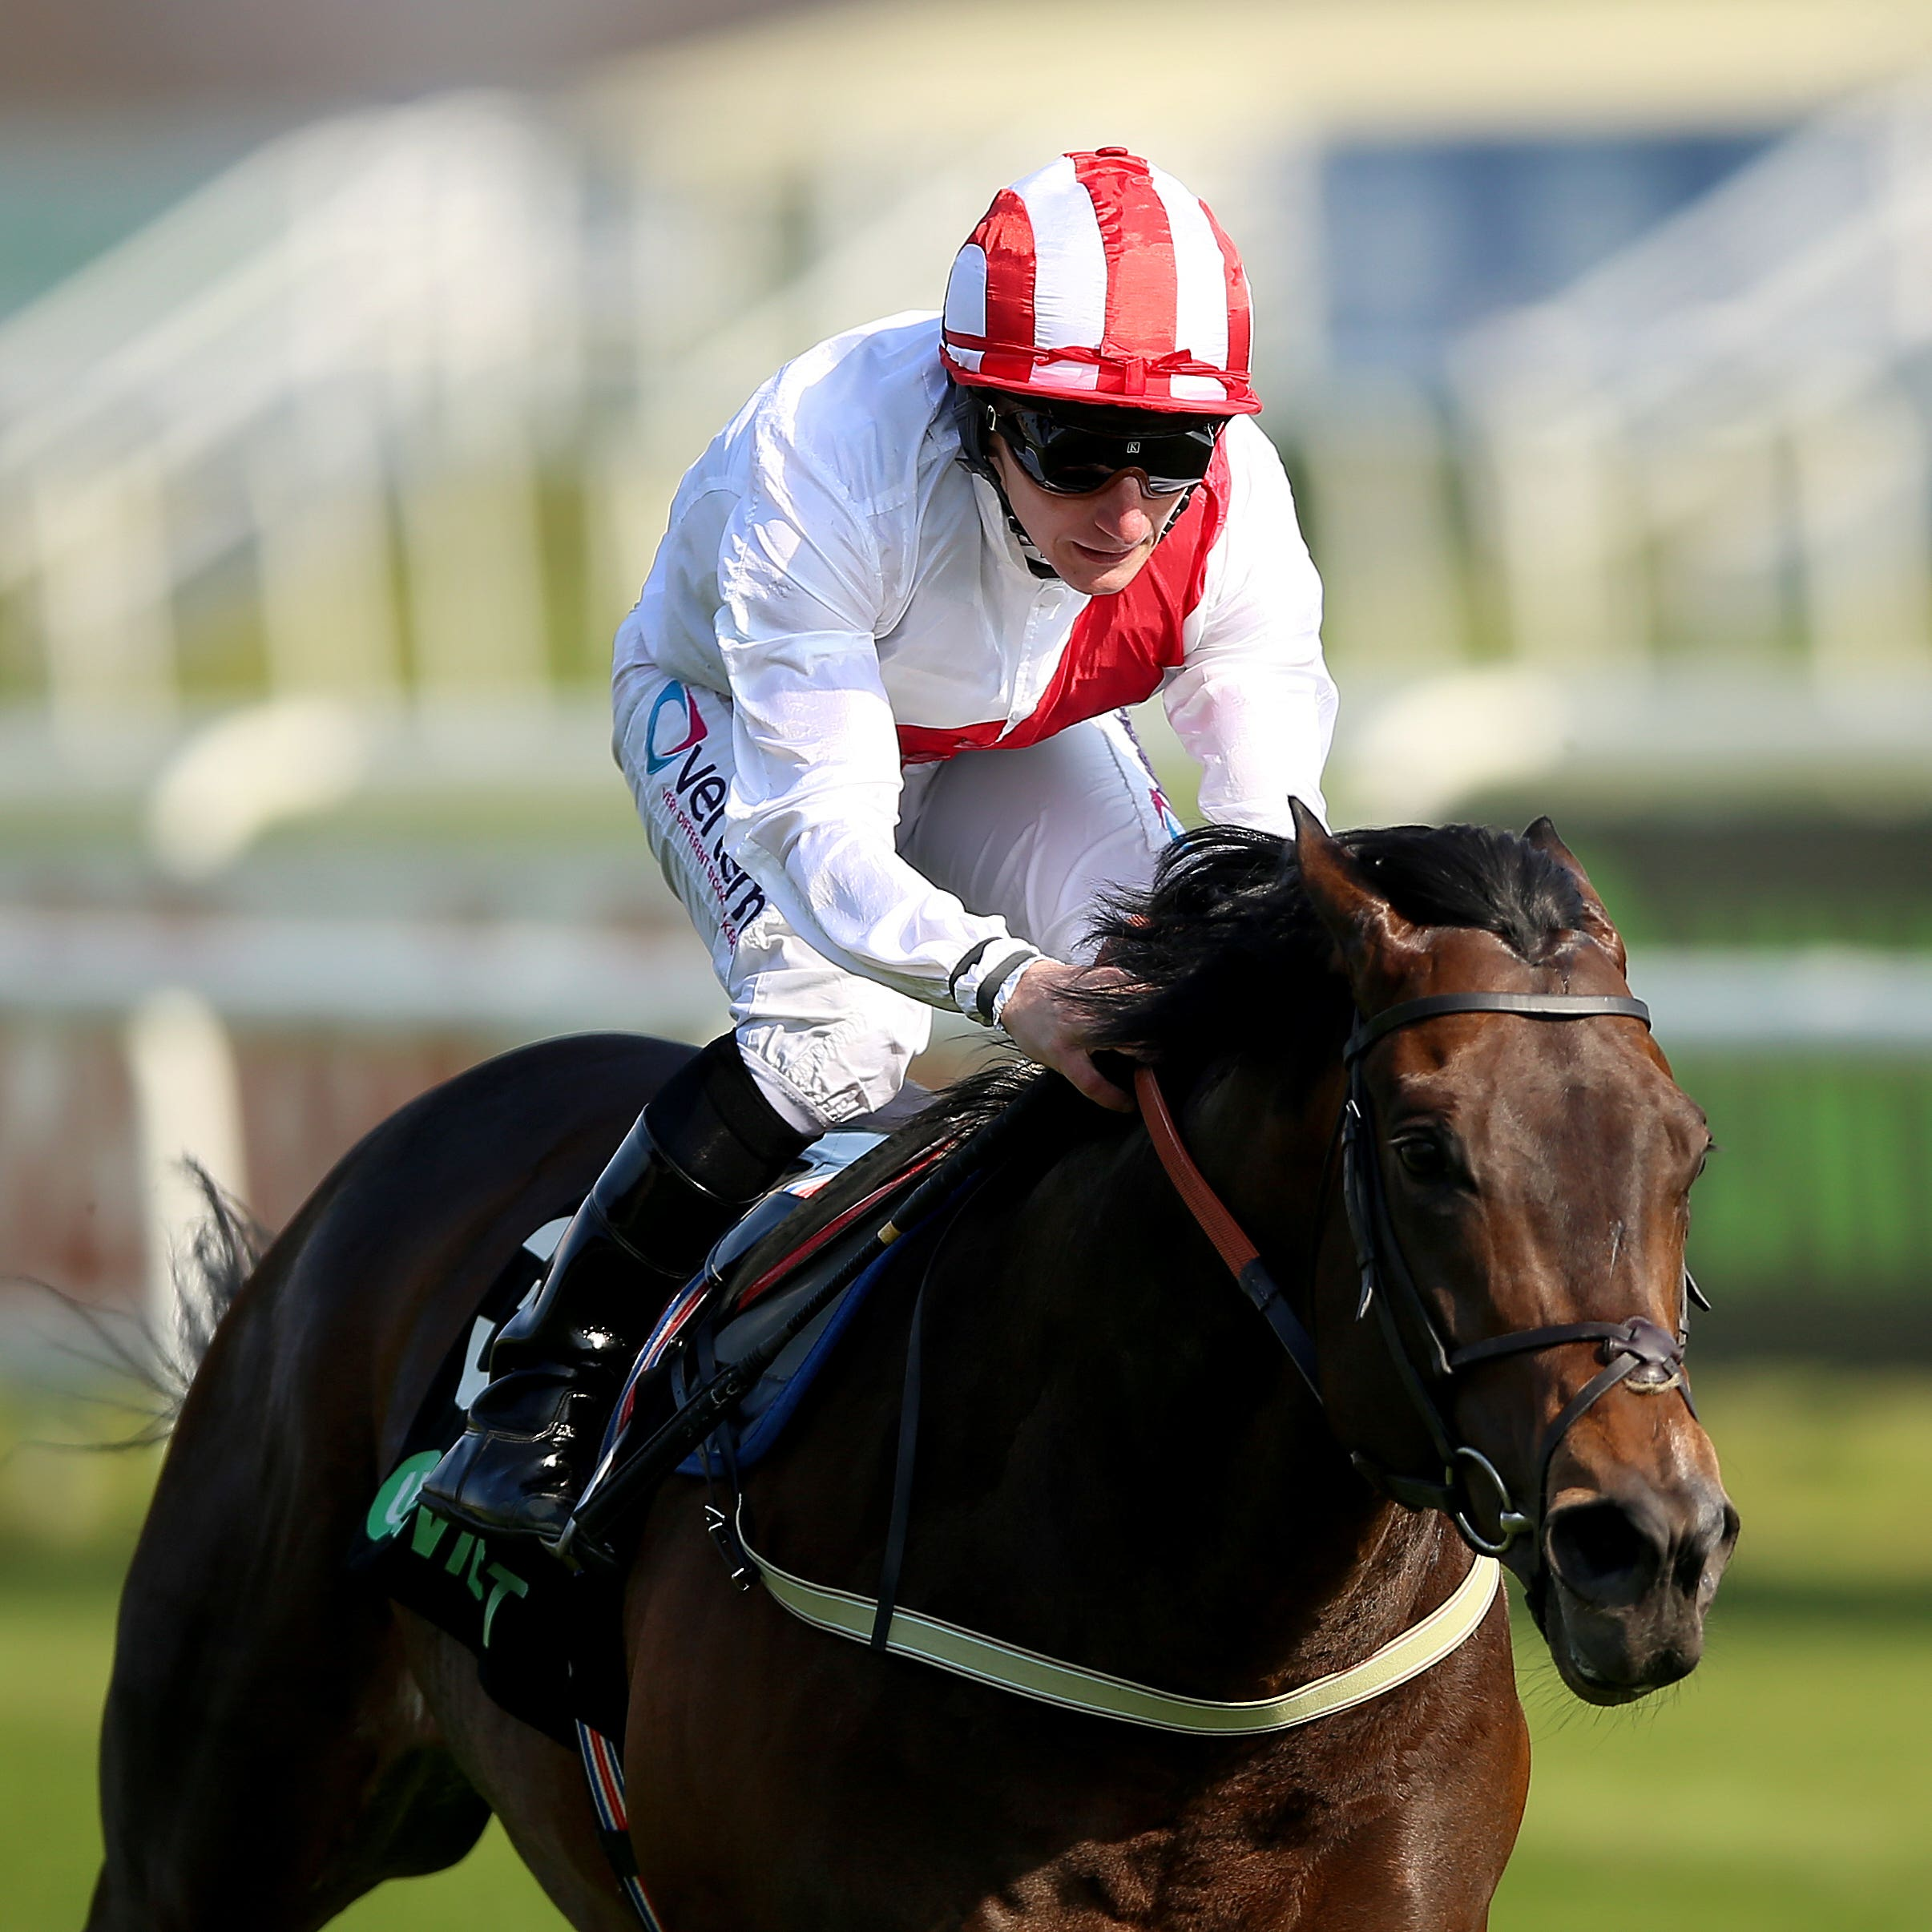 Invincible Army is set to reappear at Newcastle on Saturday following his defeat at Royal Ascot